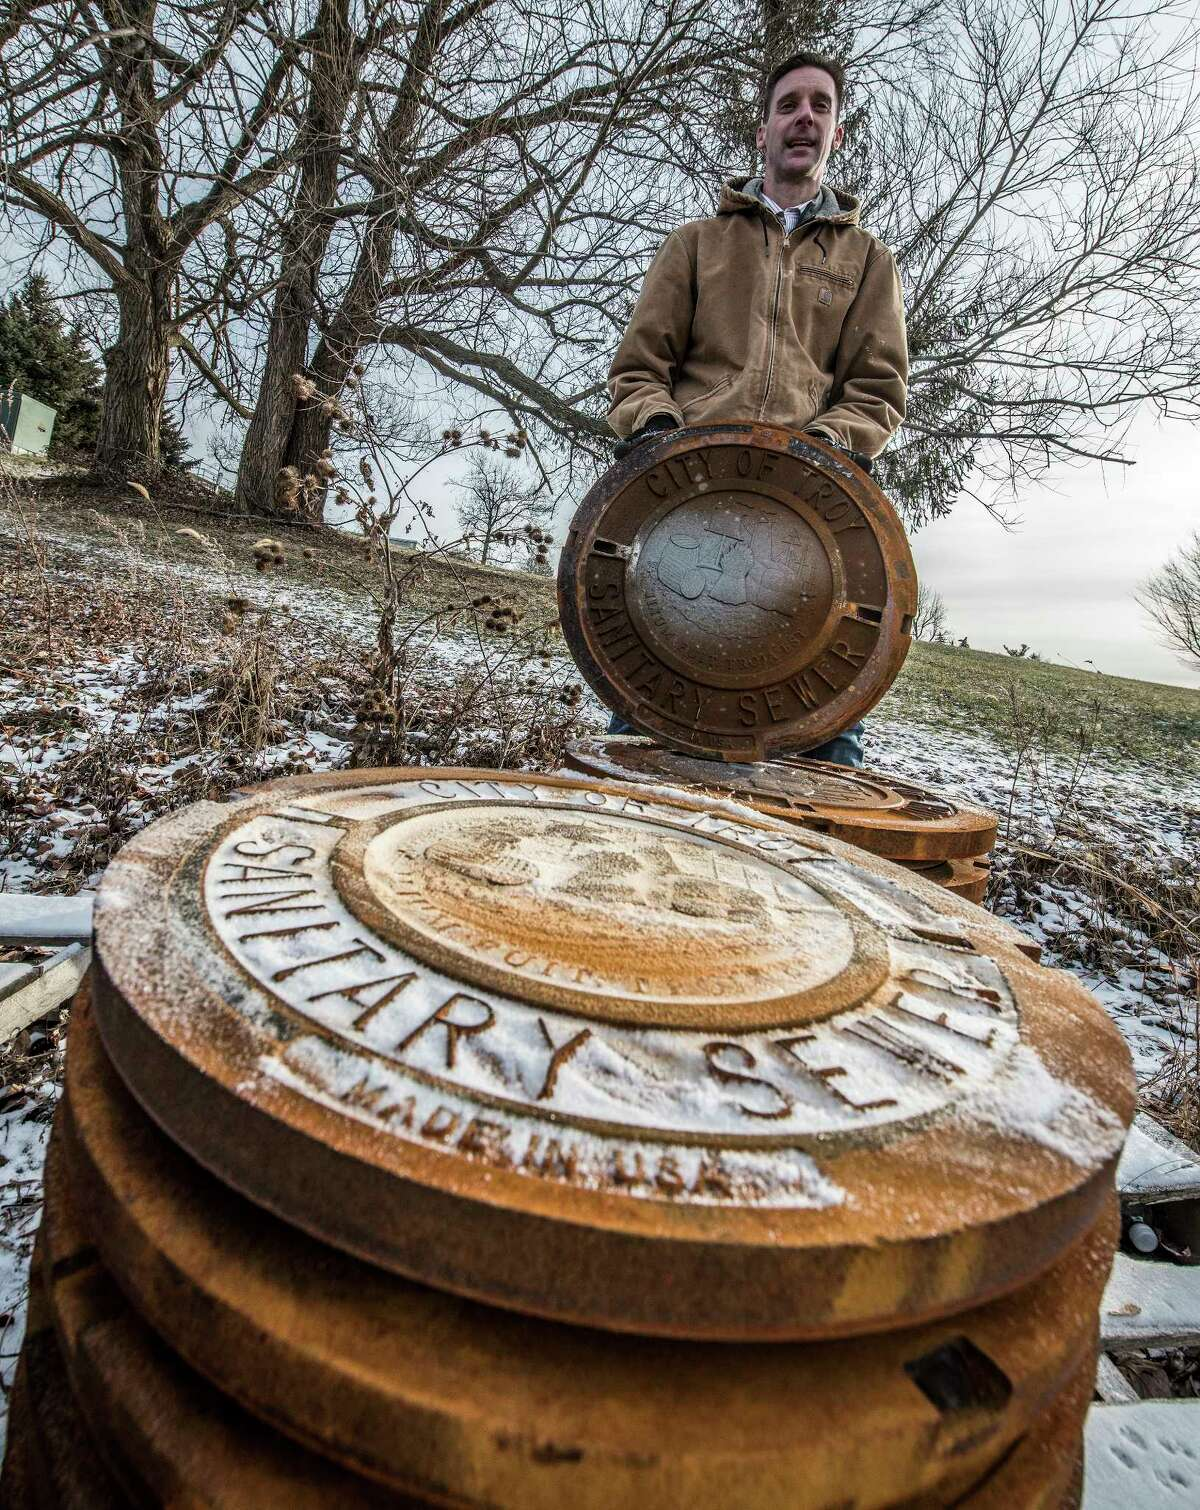 Public Utilities superintendent Chris Wheland stands near manhole covers and frames ready for installation sit in the yard at the Troy Water Plant Friday Dec 15, 2017 in Troy, N.Y. (Skip Dickstein/ Times Union)